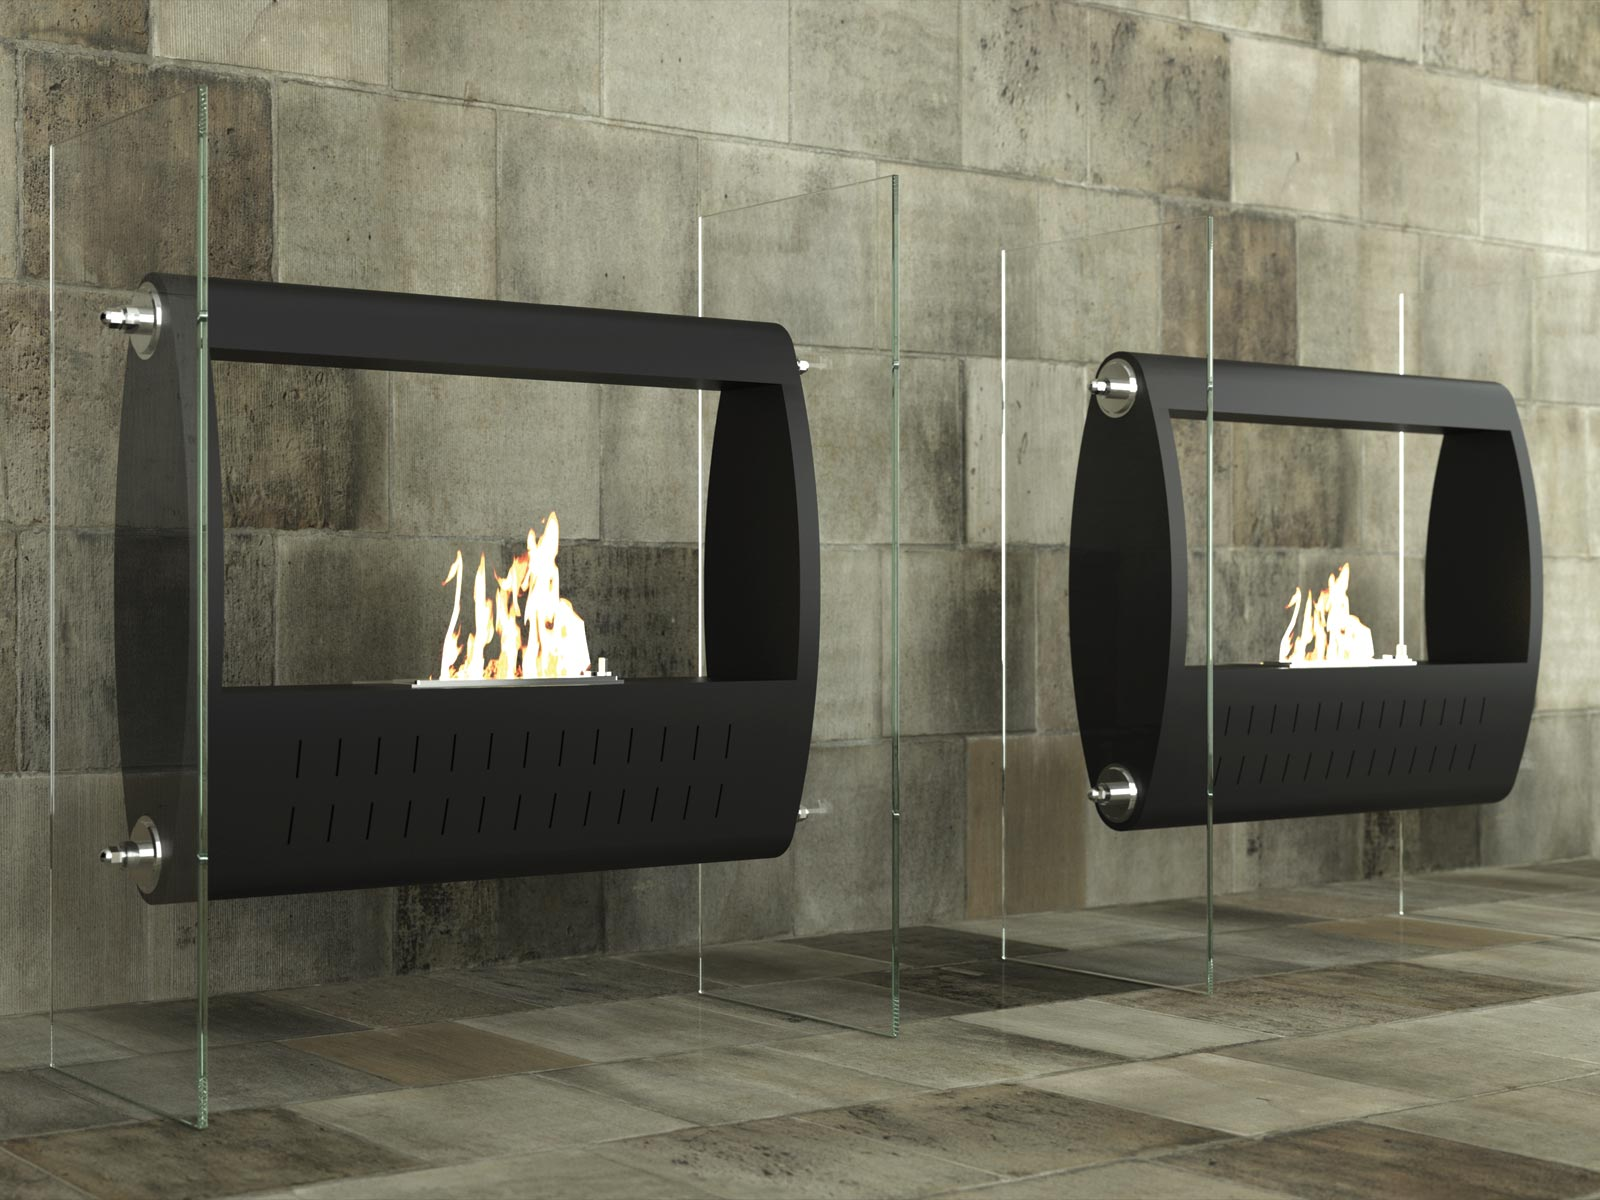 fireplaces hearth fireplace sided modern cladding single inbuilt option insert melbourne with stuv rust oblica x designer